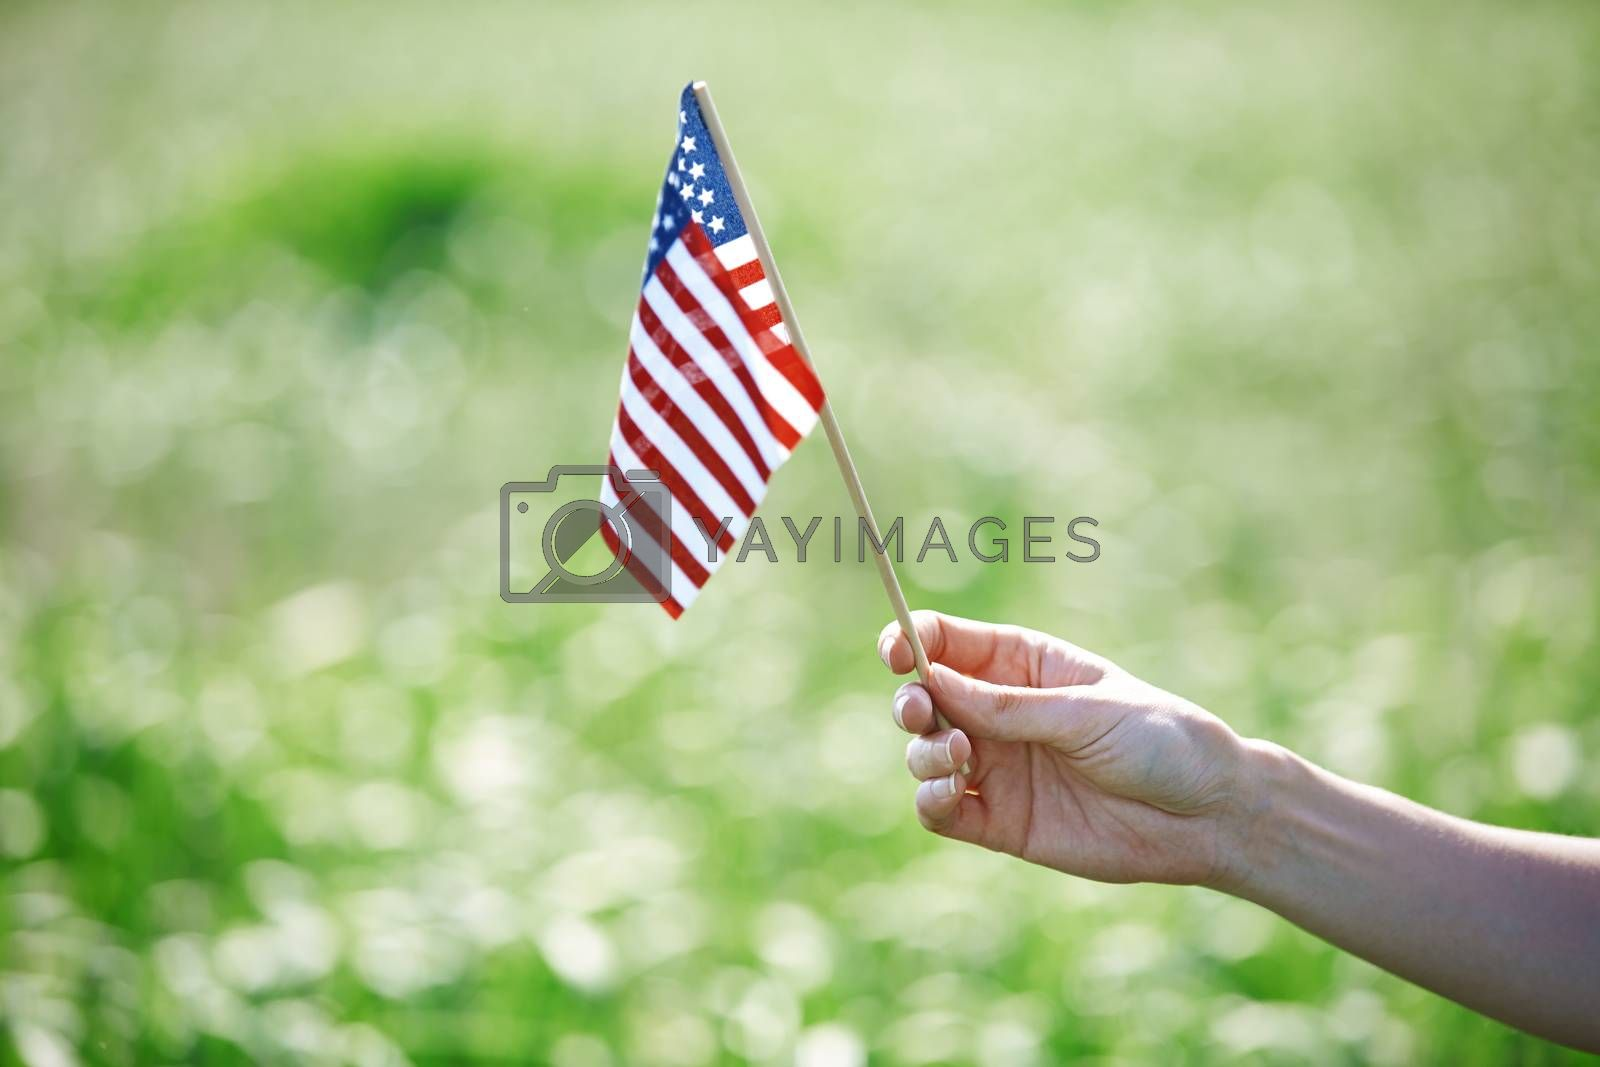 Human hand holding US flag for Independence Day